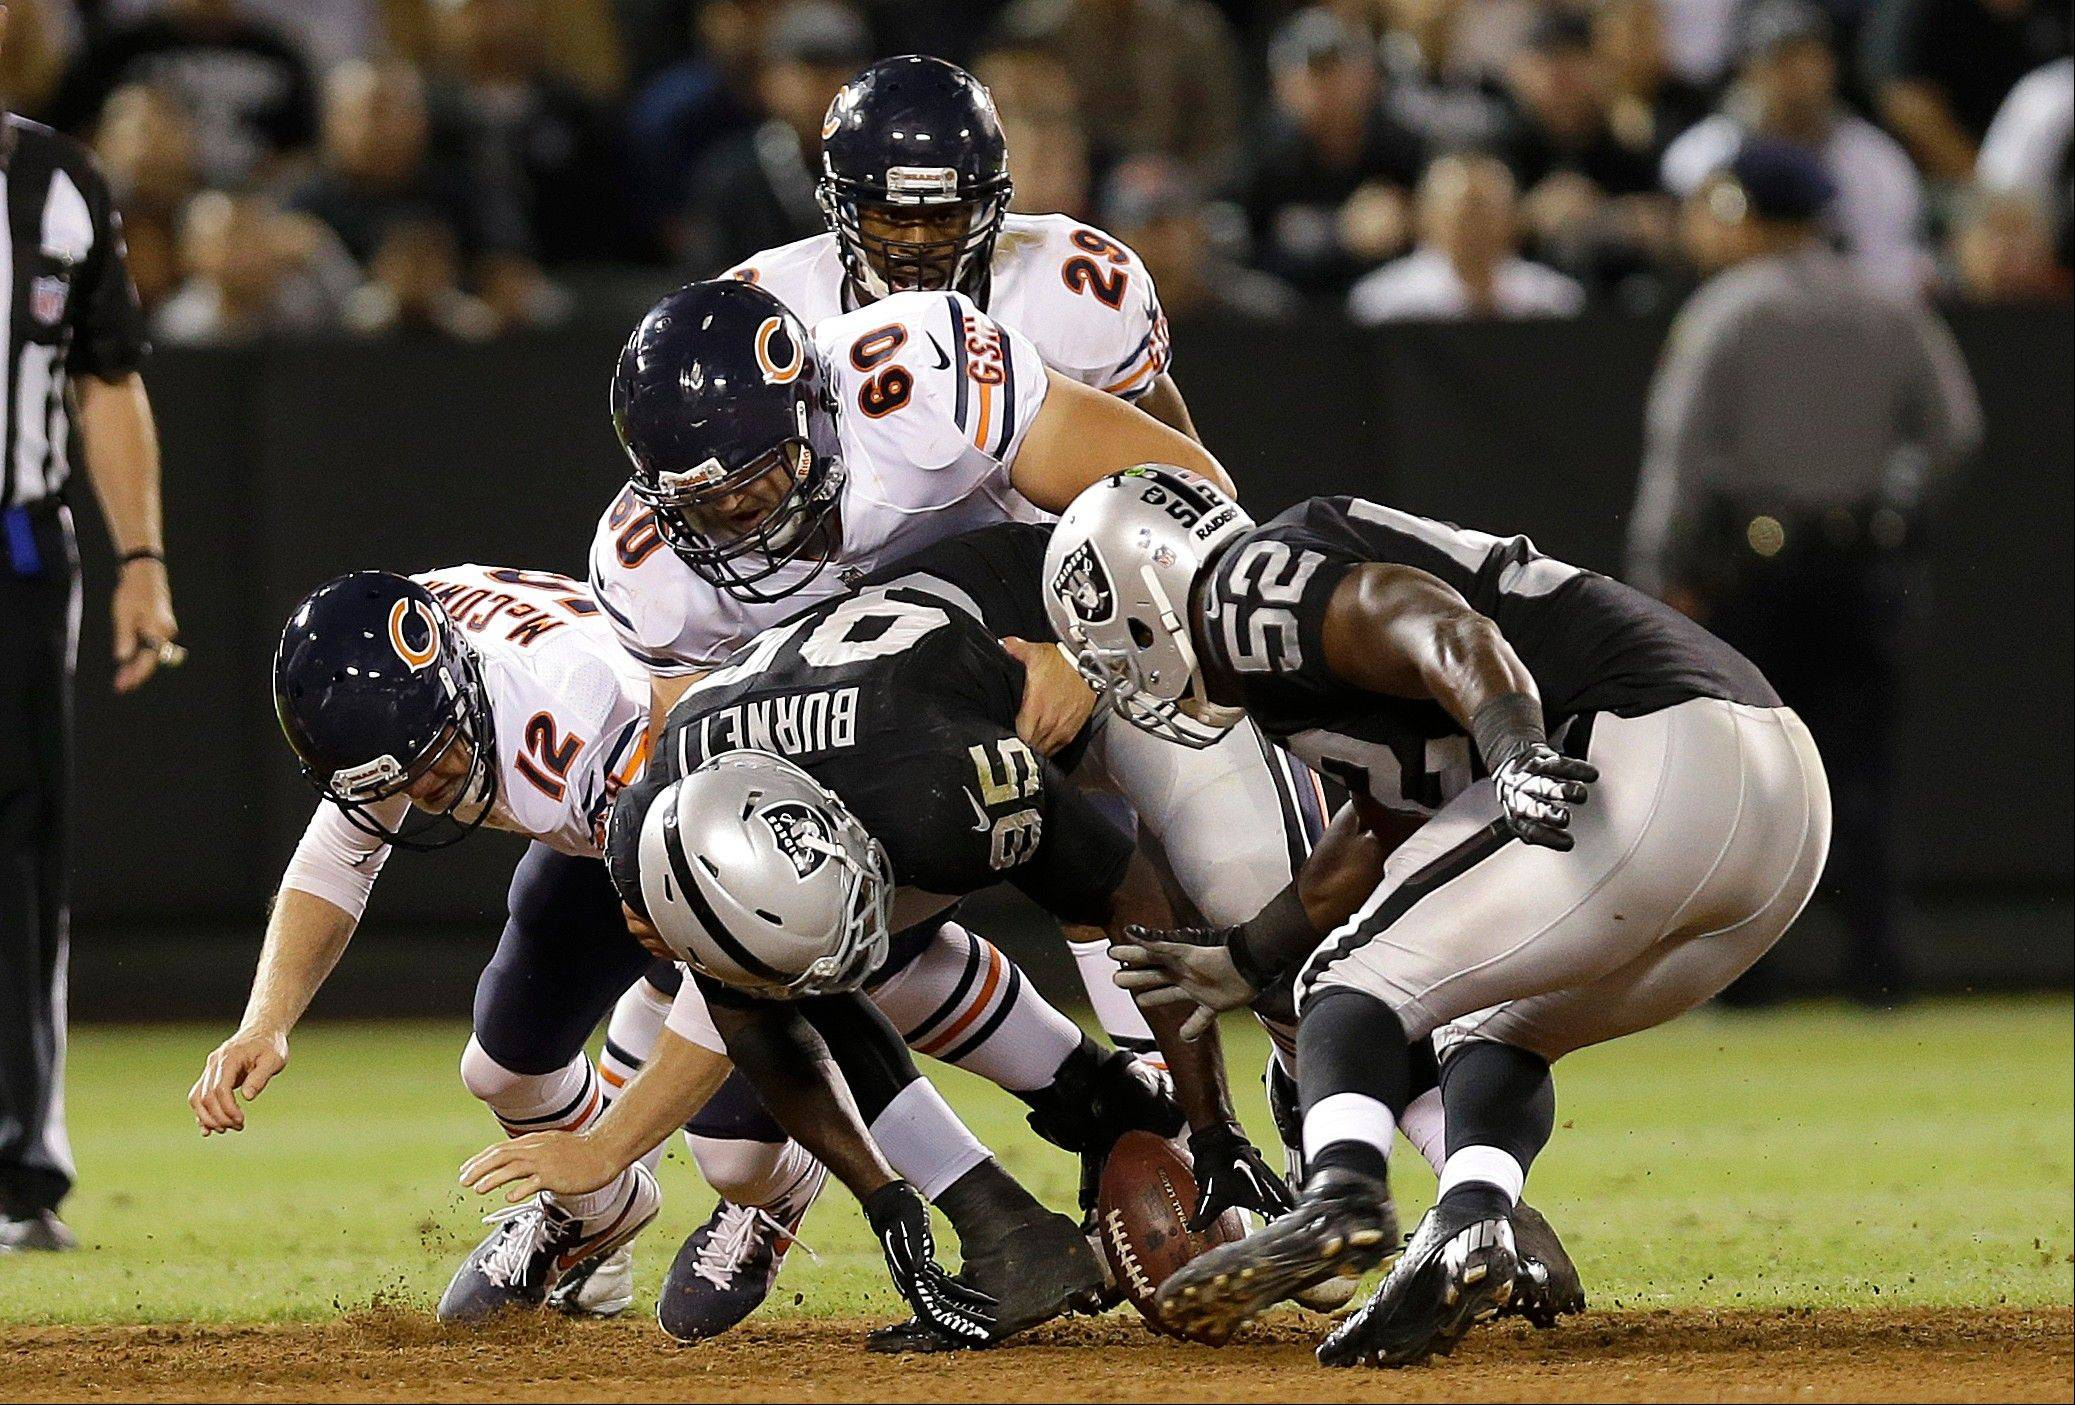 Oakland Raiders linebacker Kaelin Burnett (95) and linebacker Omar Gaither (52) try to recover a fumble by Chicago Bears quarterback Josh McCown (12) during the third quarter .